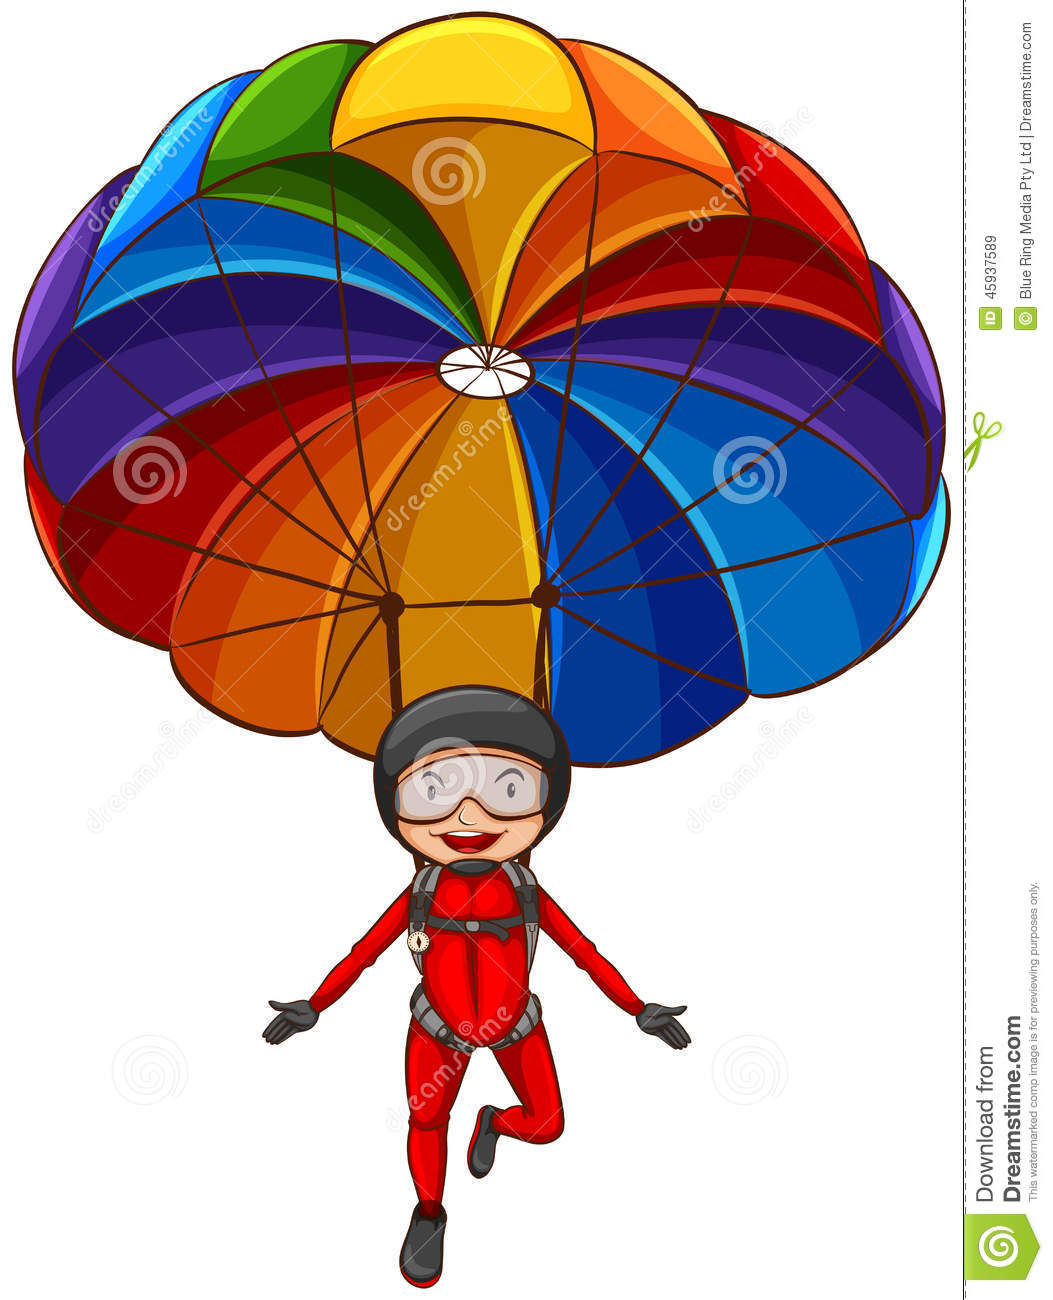 1053x1300 Collection Of Parachute Clipart No Background High Quality